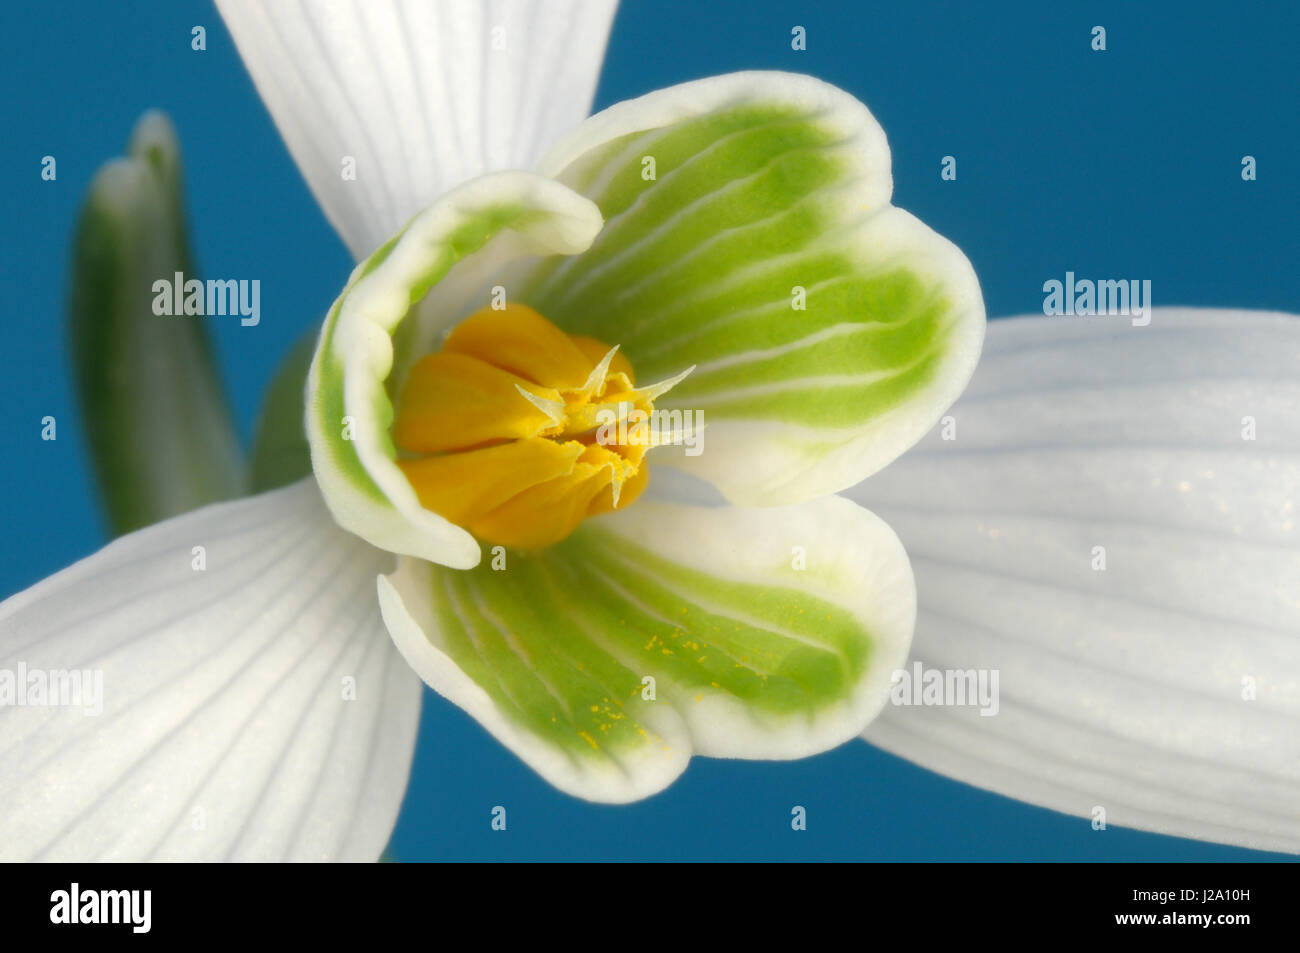 Macro image of a flowering Common Snowdrop - Stock Image